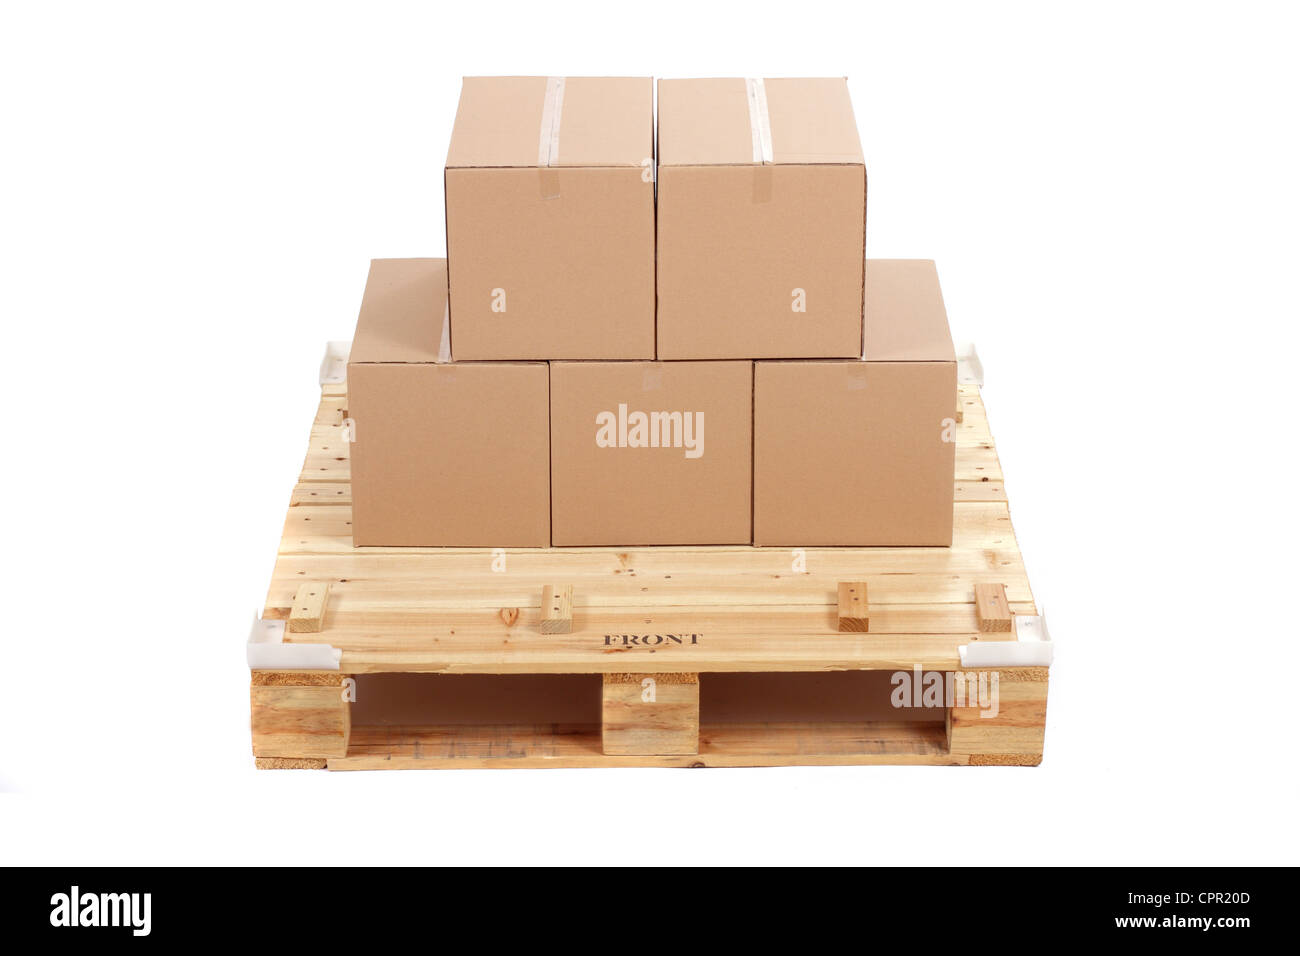 cardboard boxes on wooden palette, isolated on white - Stock Image